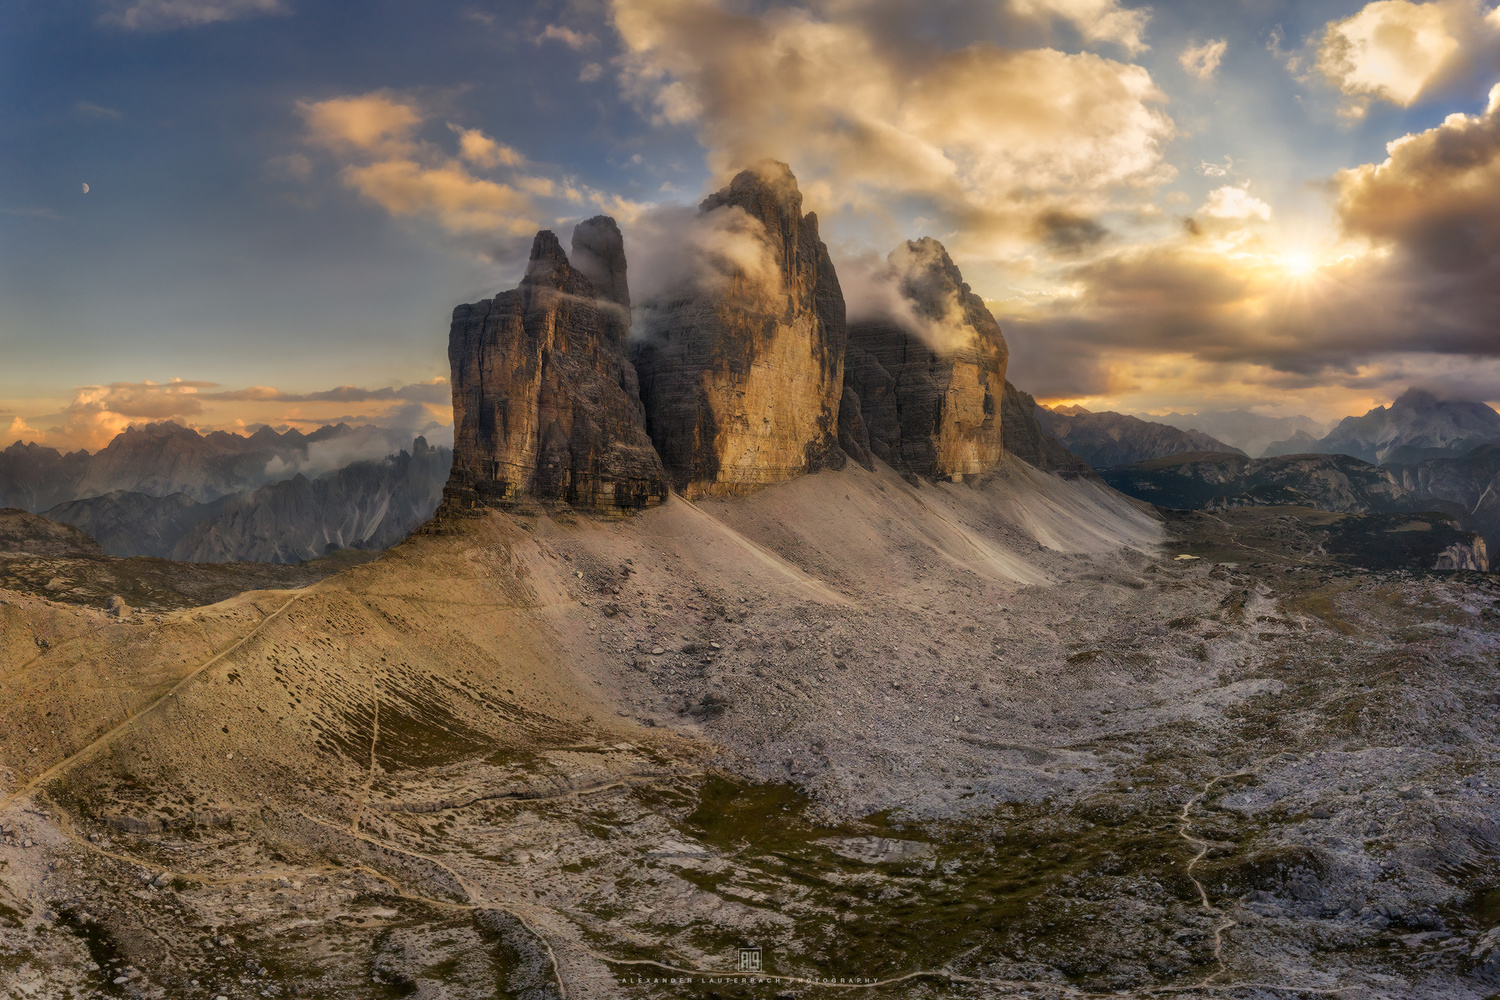 Sunset at Tre Cime di Lavaredo by Alexander Lauterbach